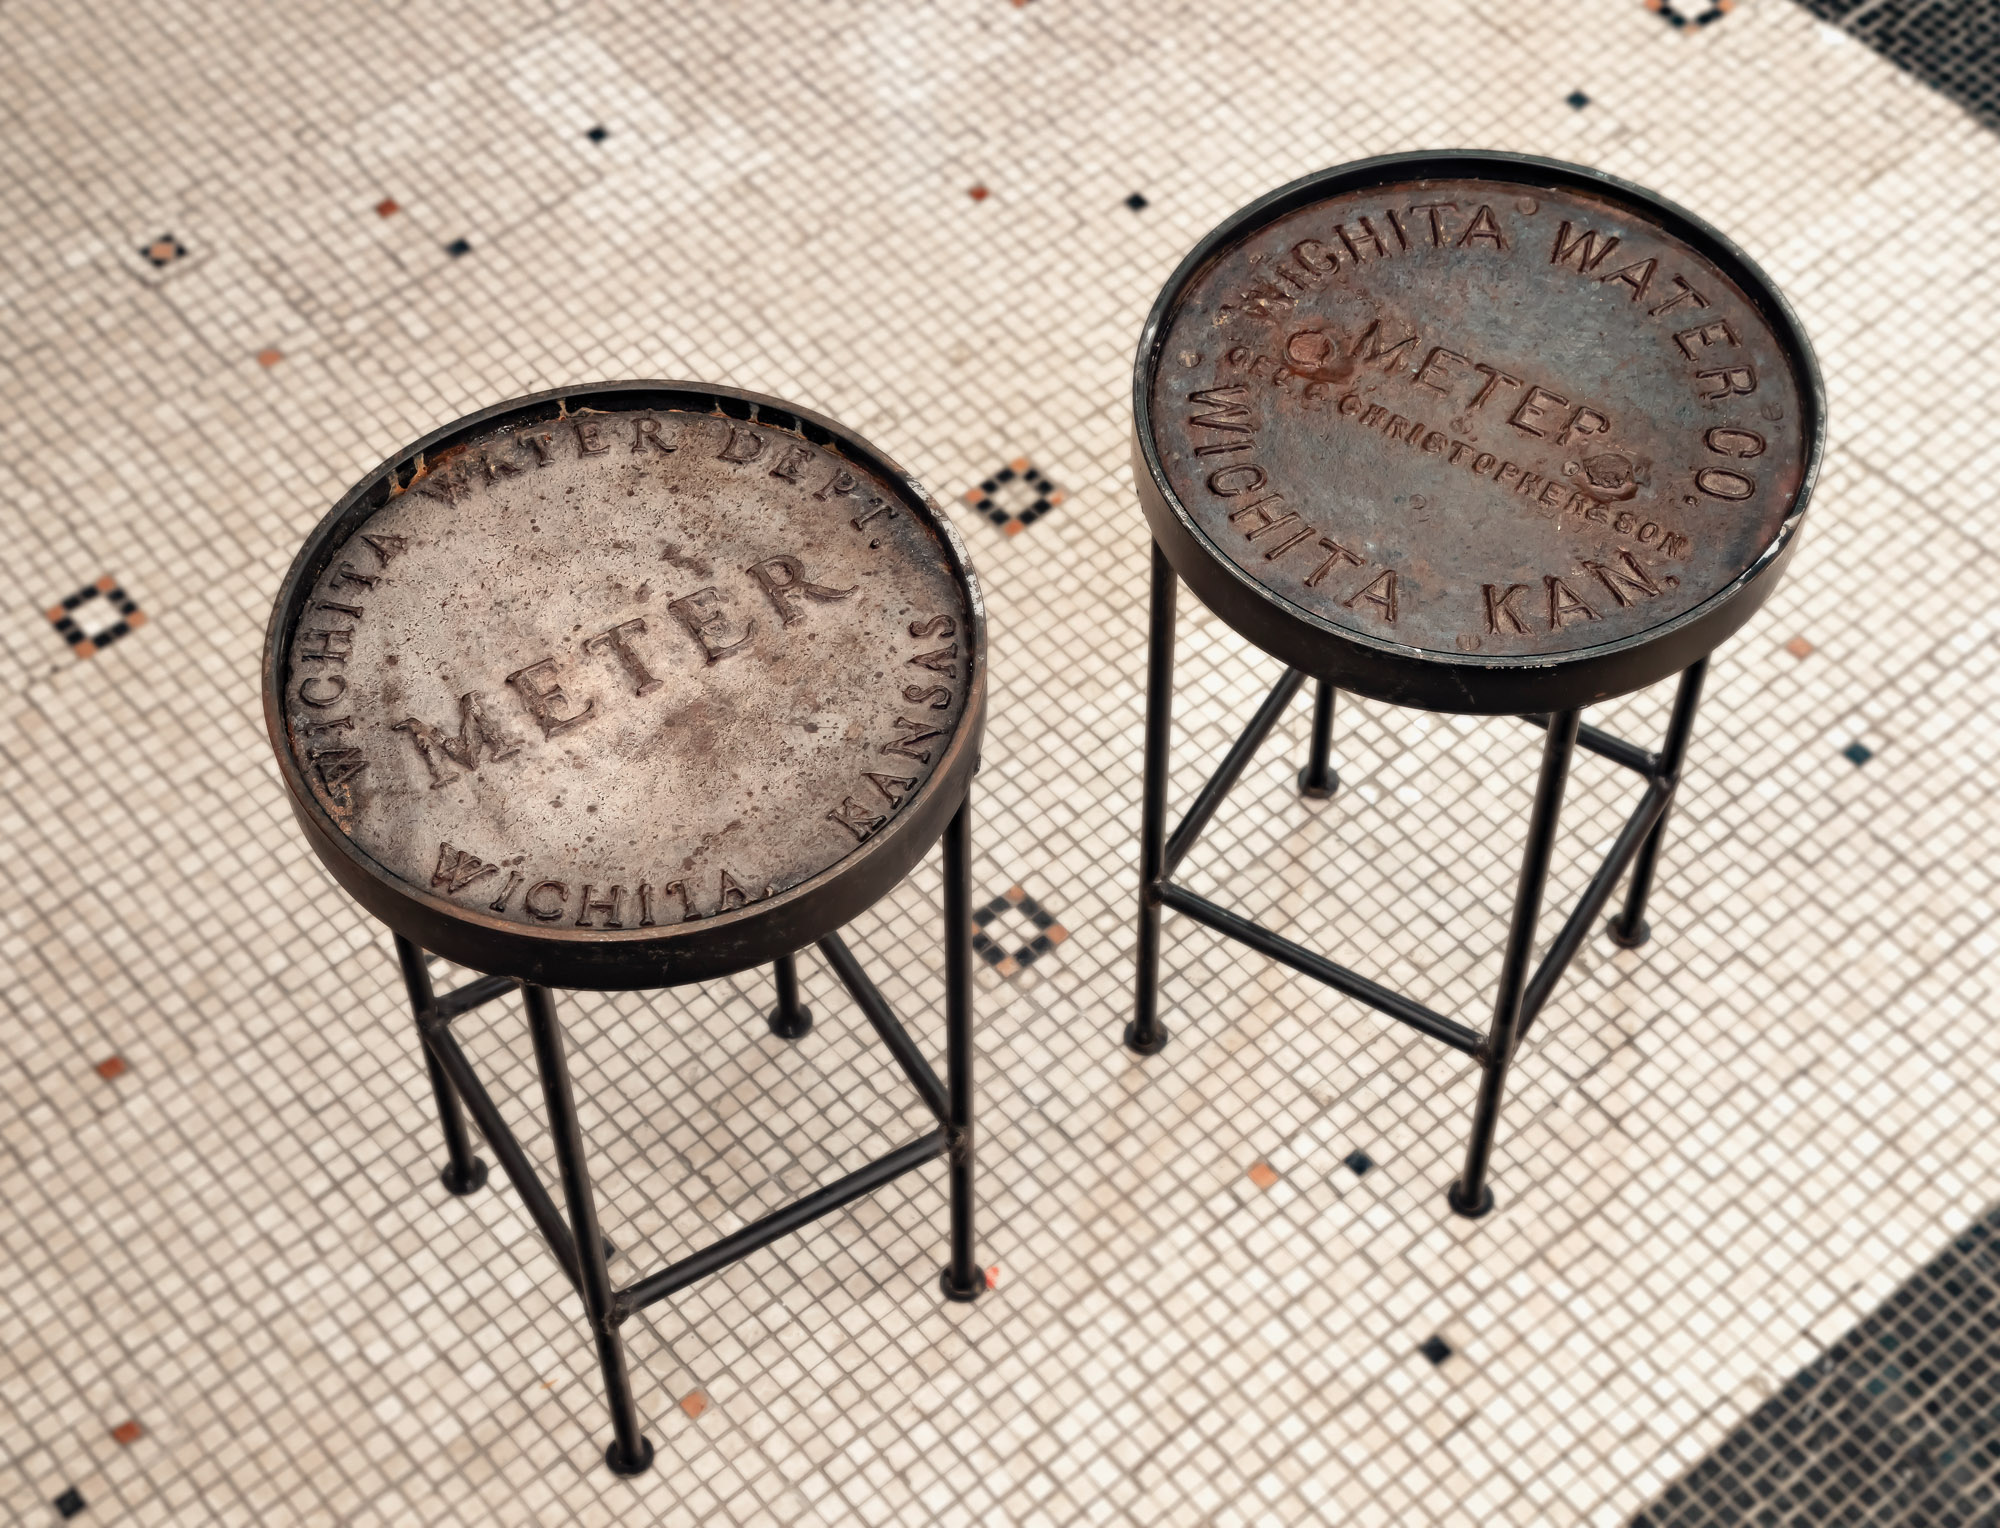 water-meter cover stools